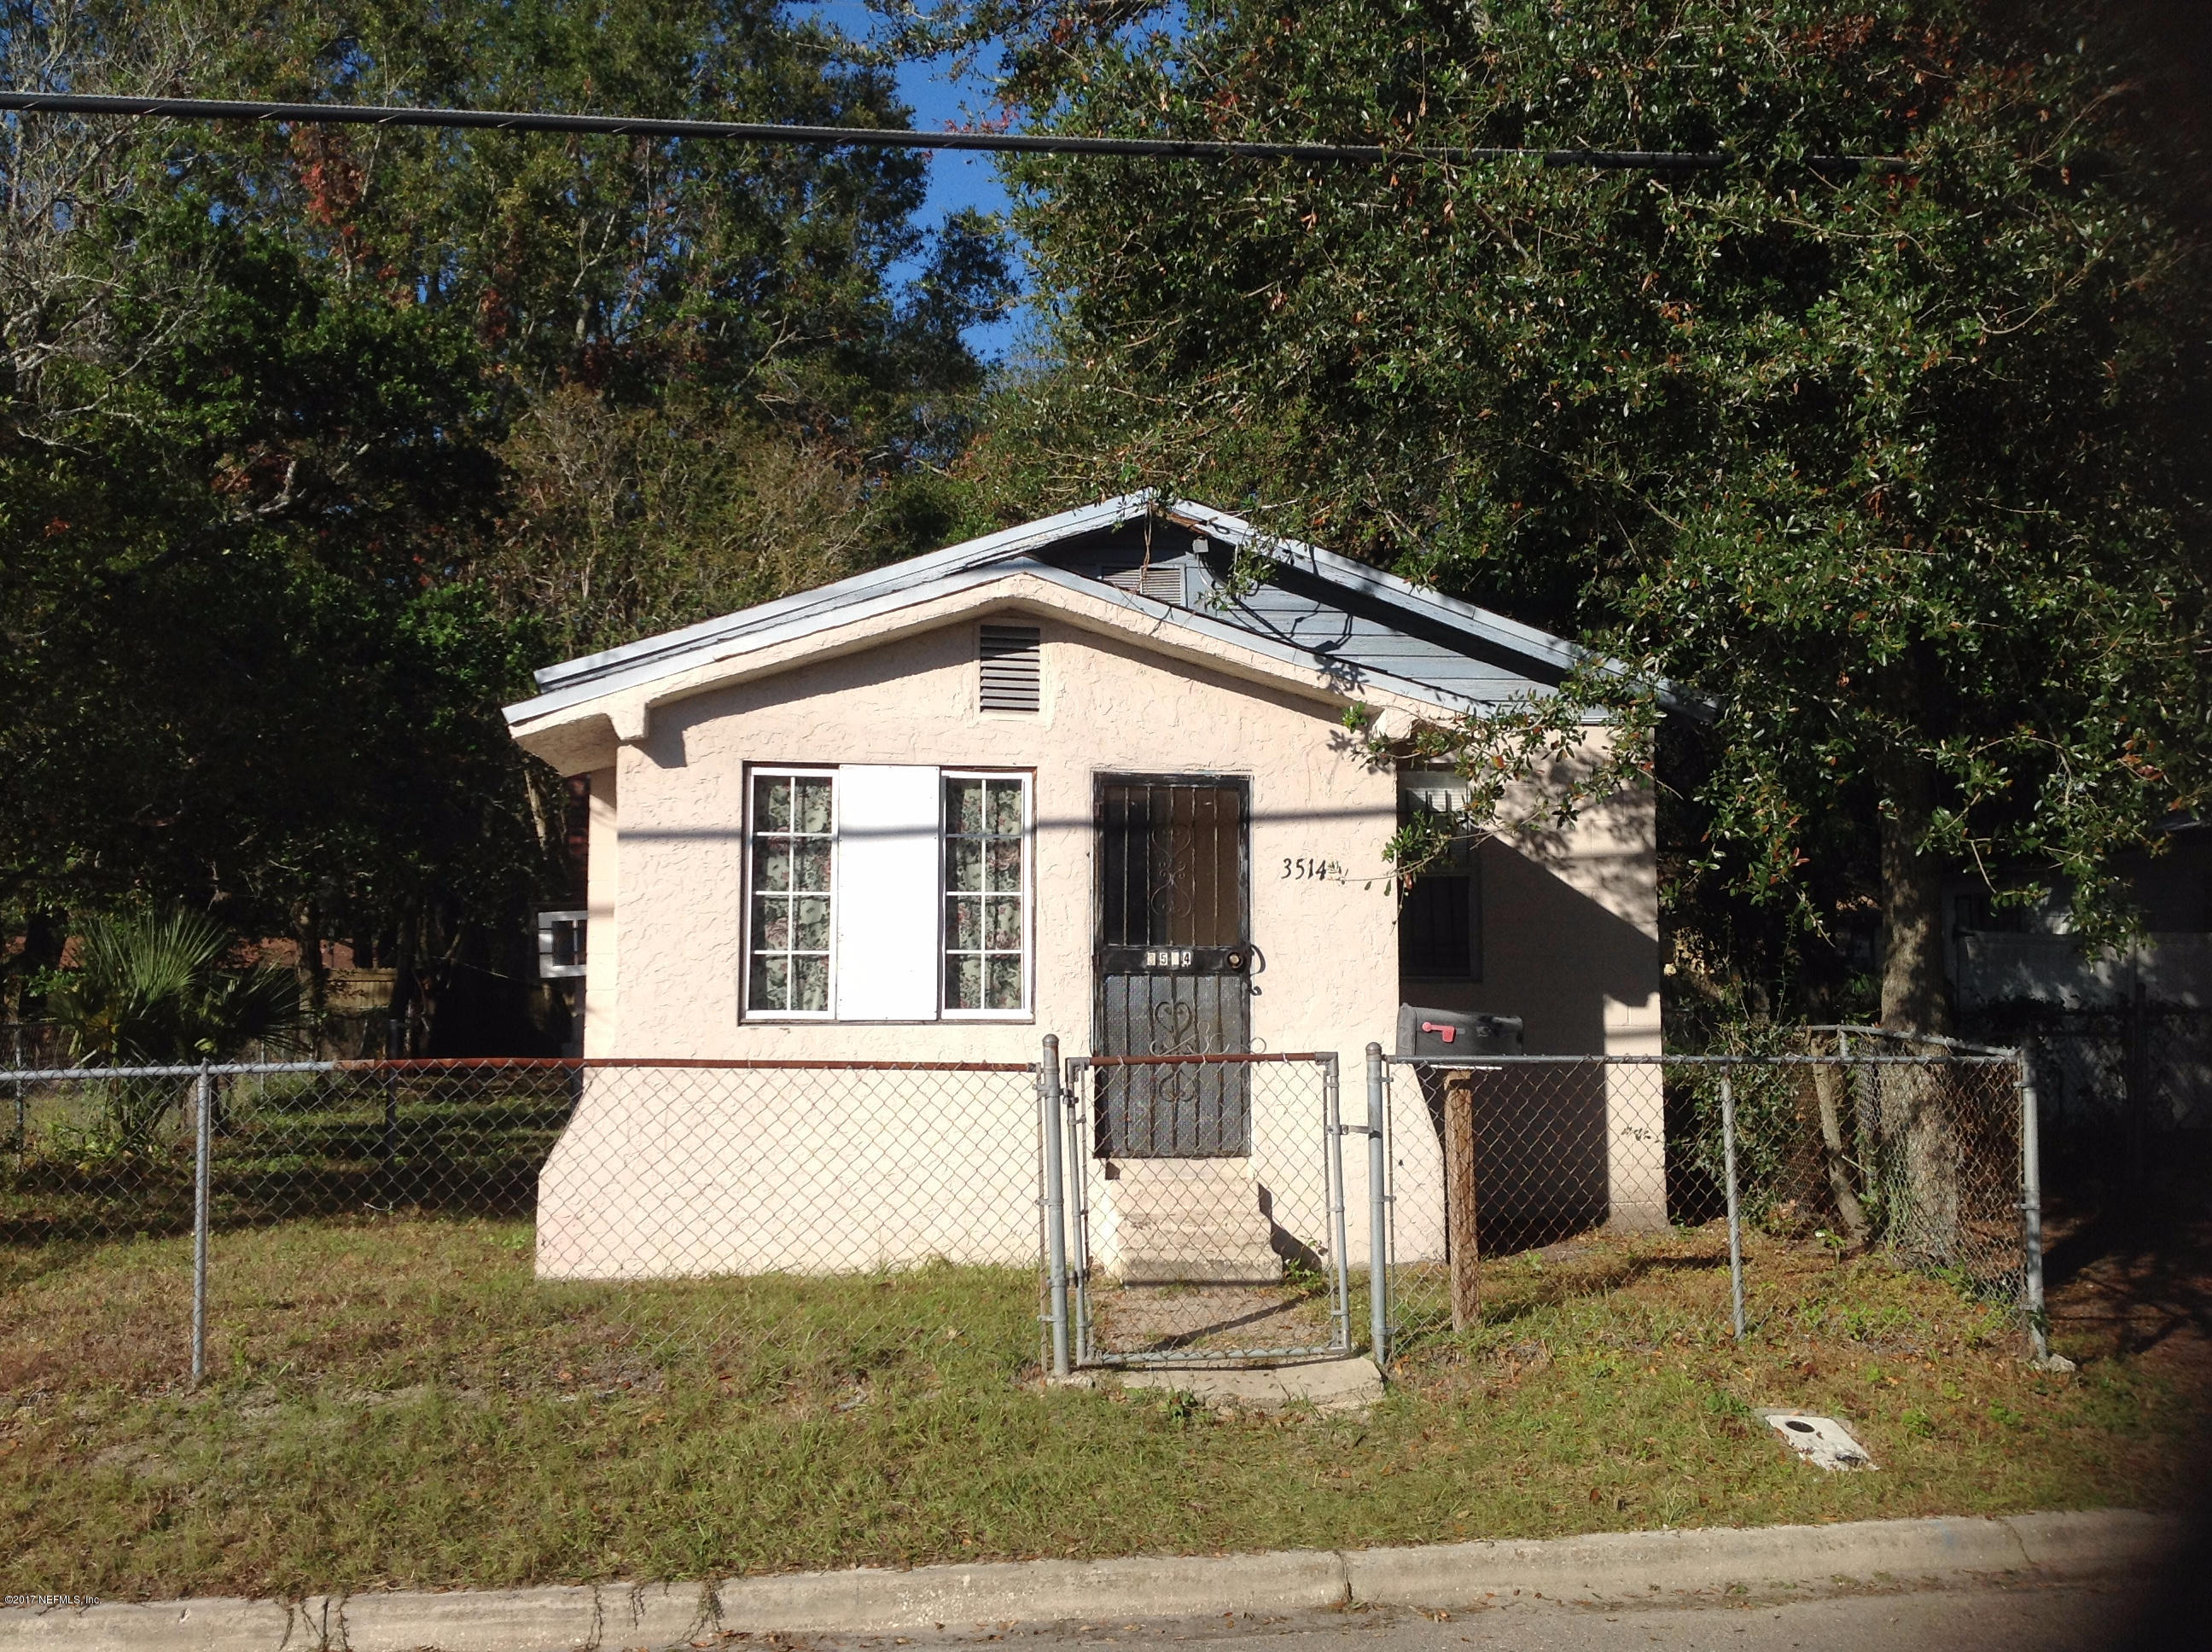 3514 HAINES, JACKSONVILLE, FLORIDA 32206, 3 Bedrooms Bedrooms, ,1 BathroomBathrooms,Residential - single family,For sale,HAINES,909564